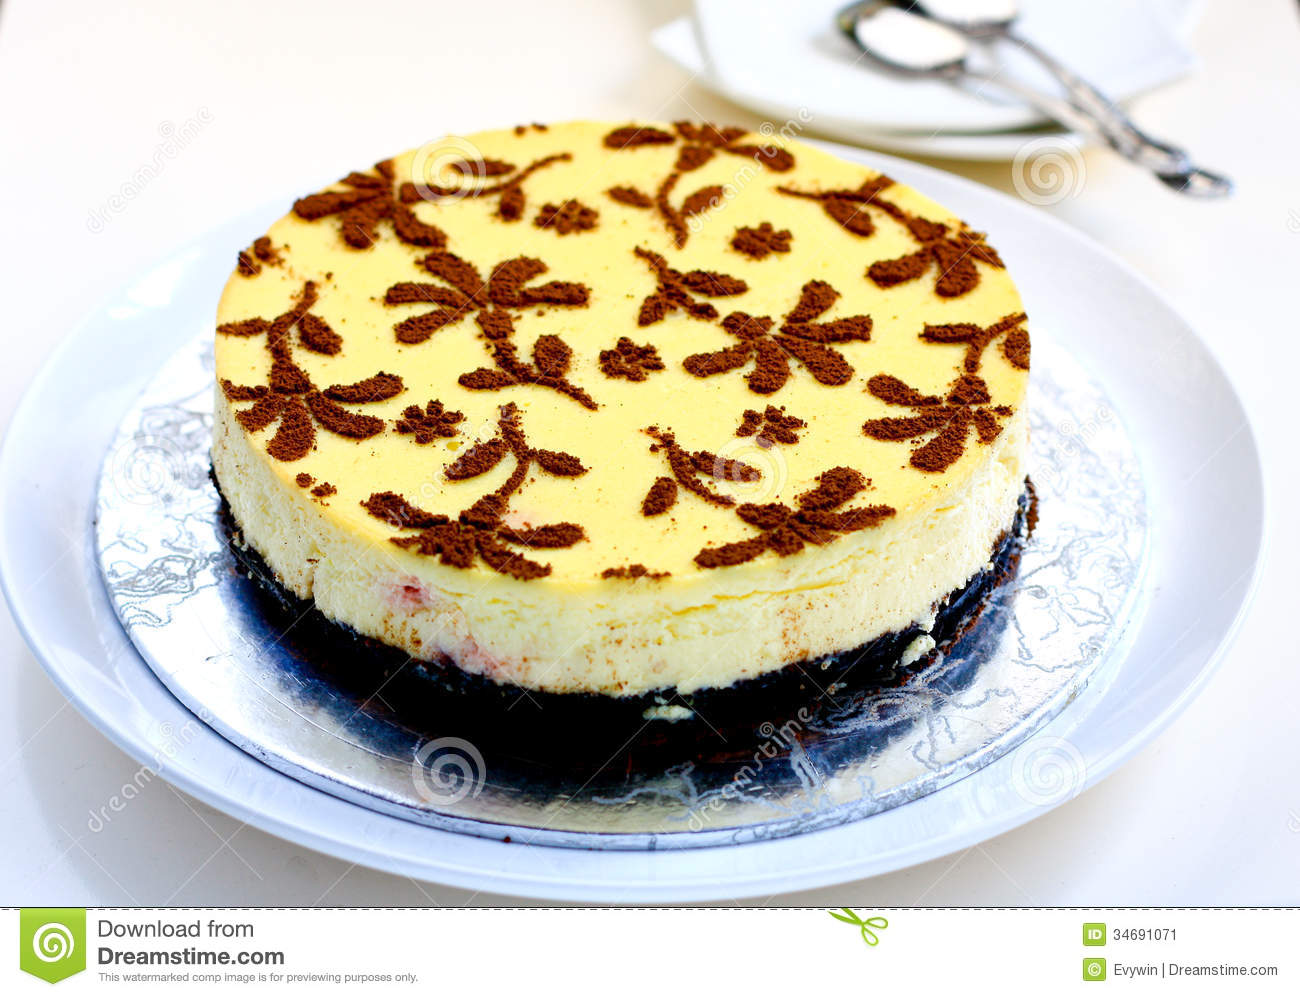 Cheese Cake Stock Image - Image: 34691071